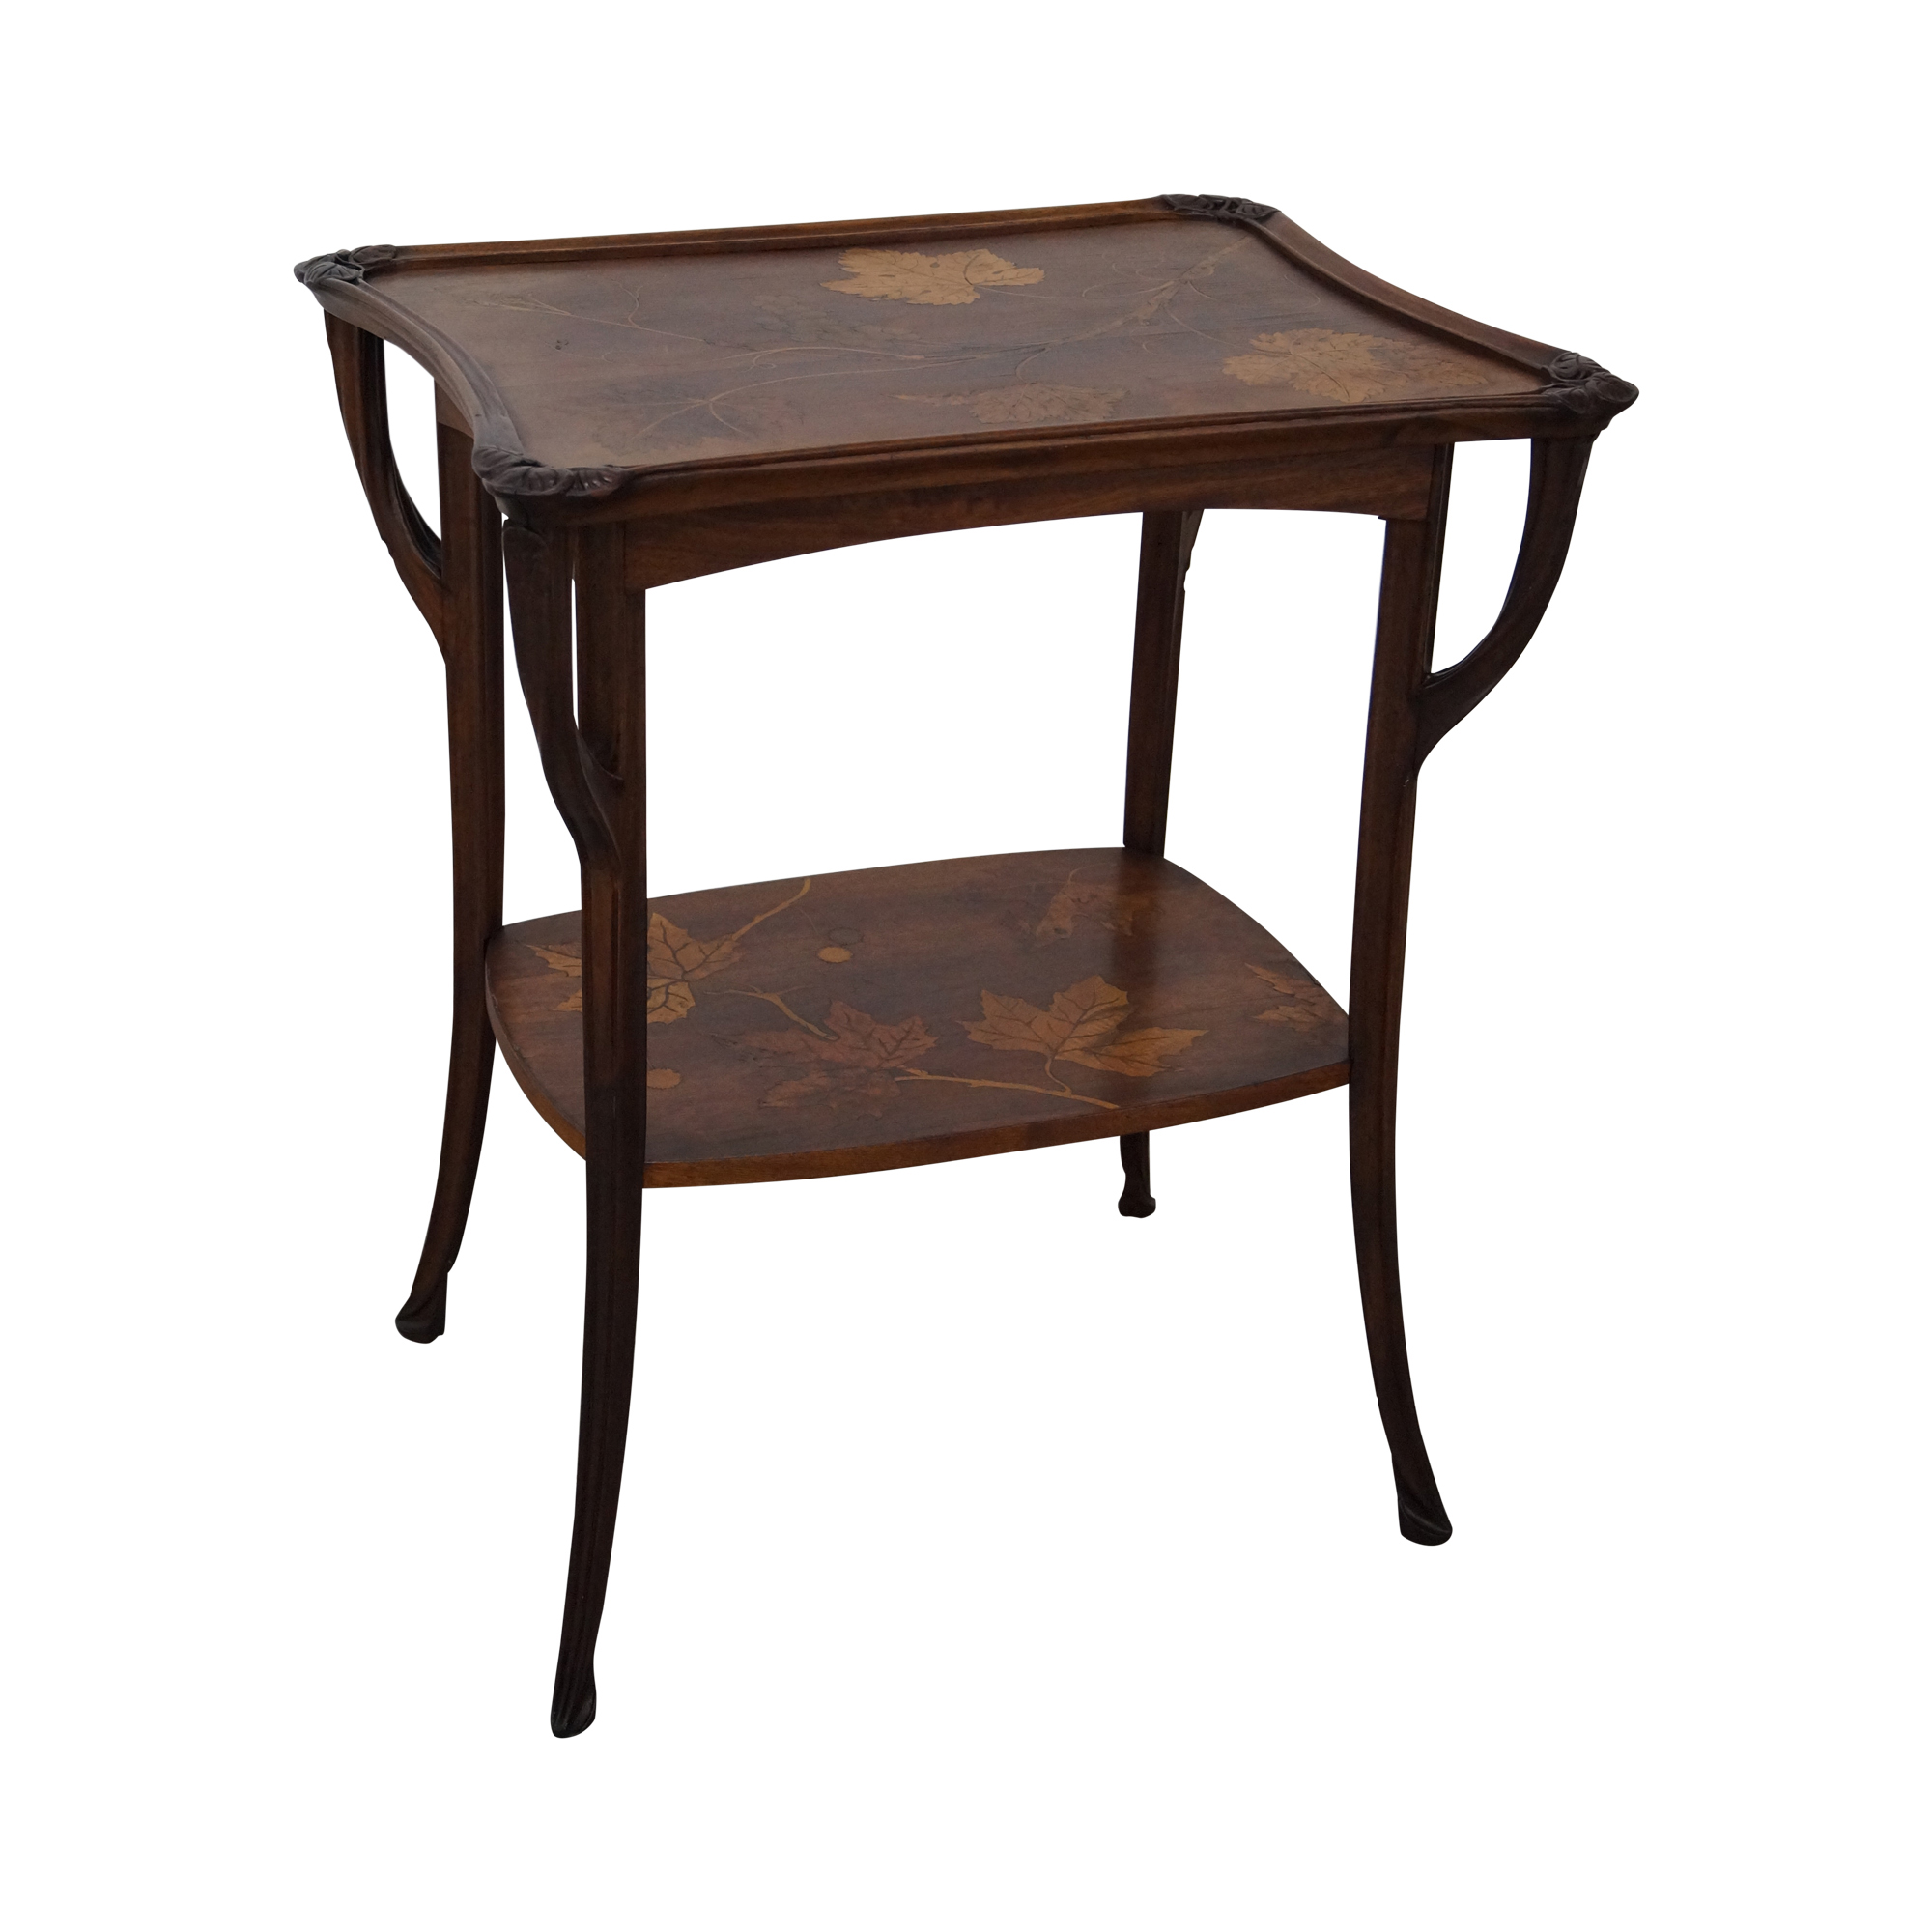 Antique Art Nouveau Marquetry Inlaid Side Table